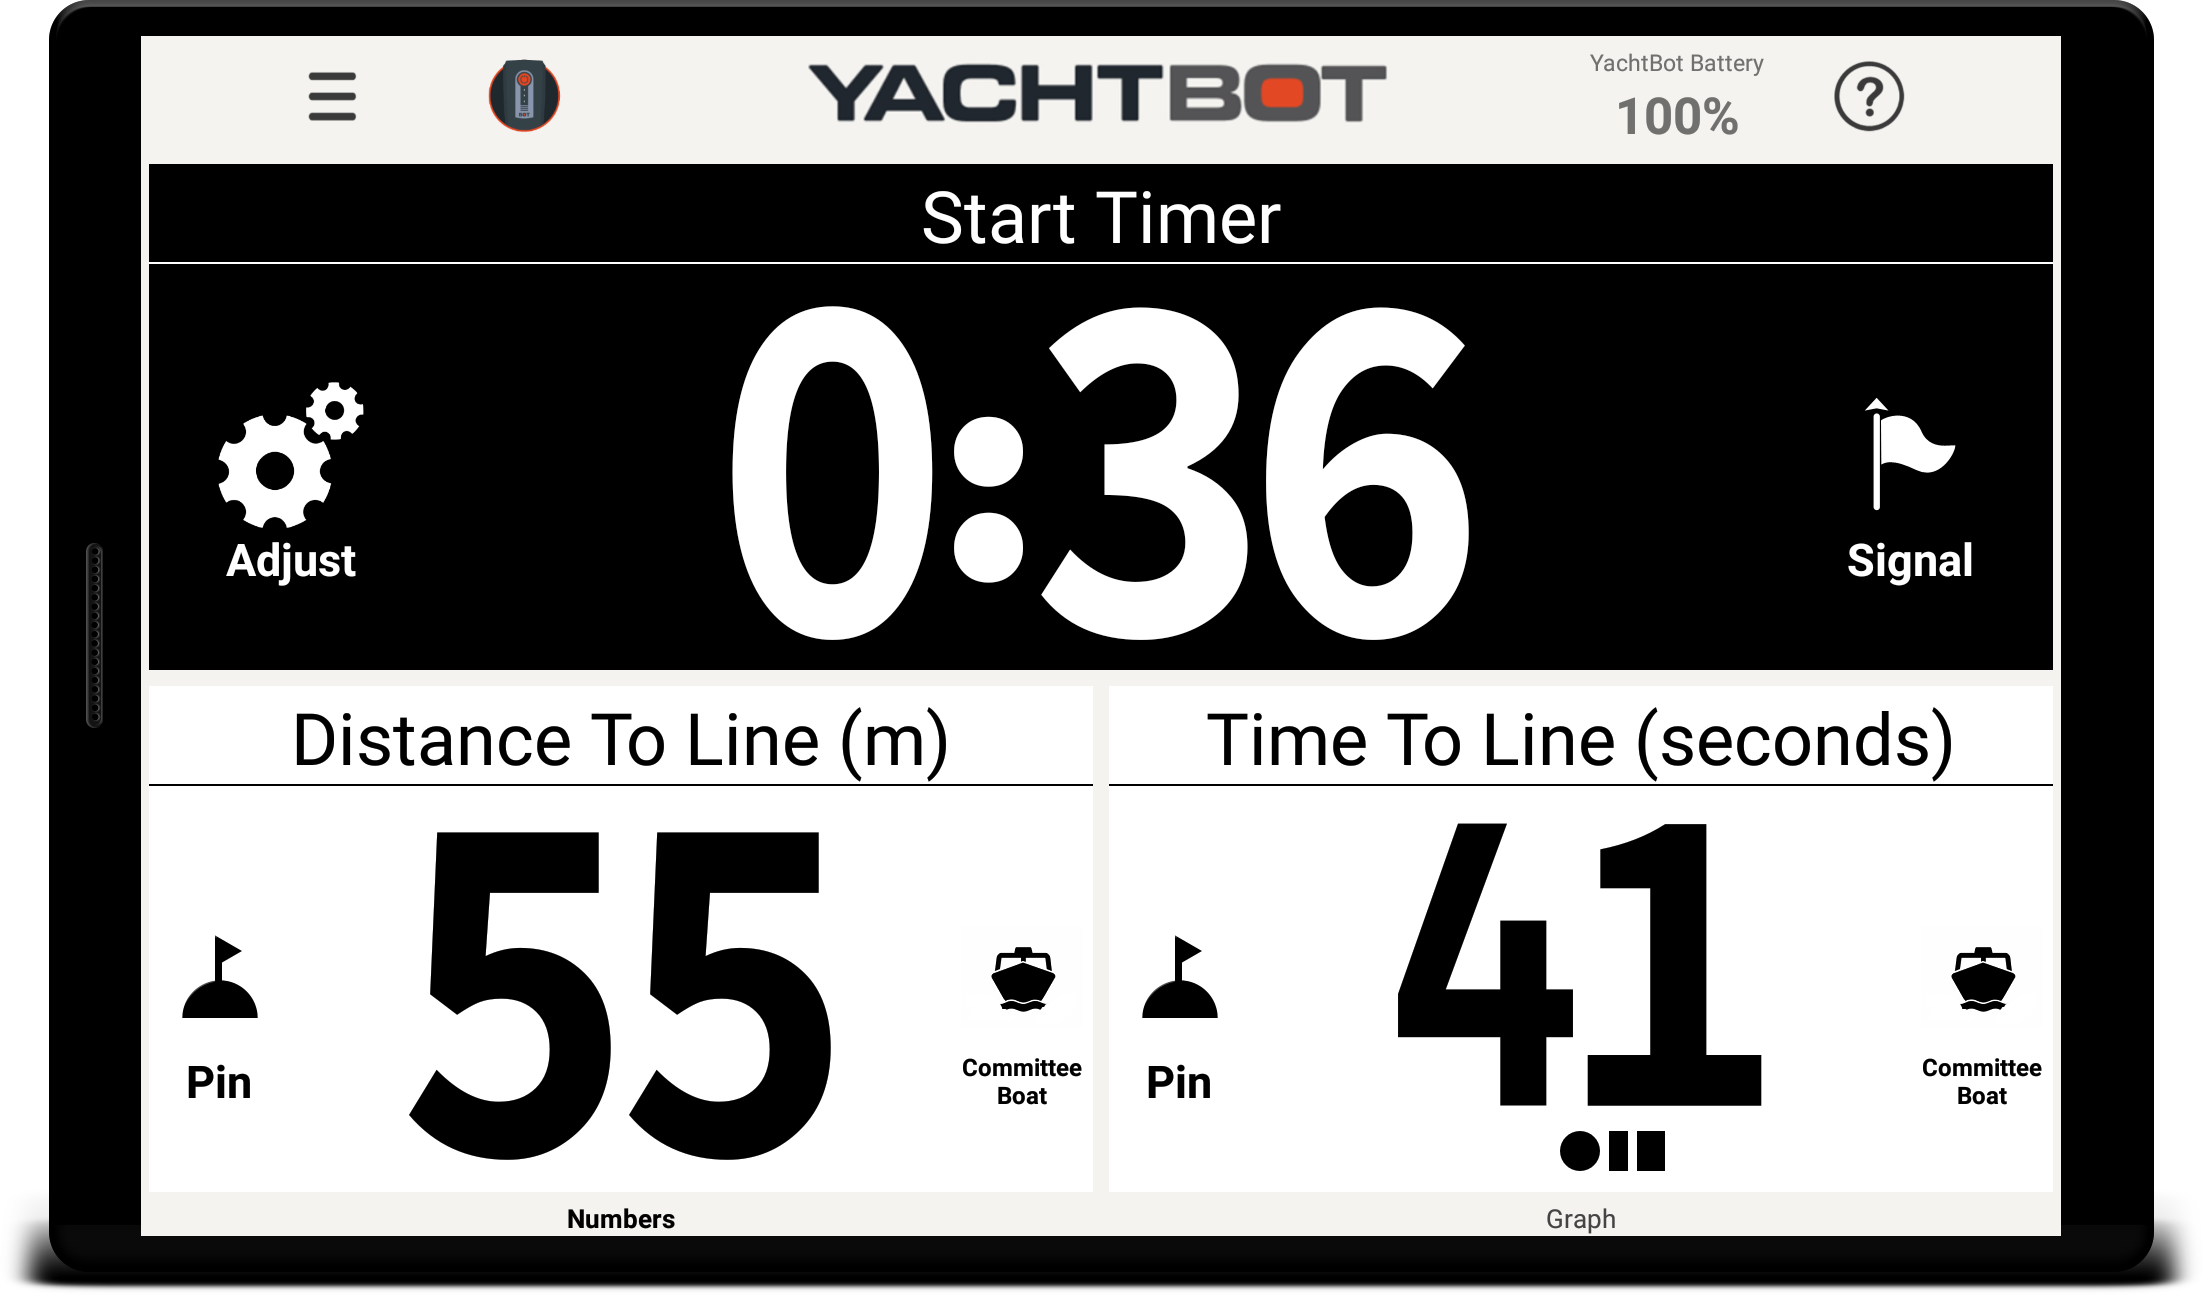 YachtBot Display